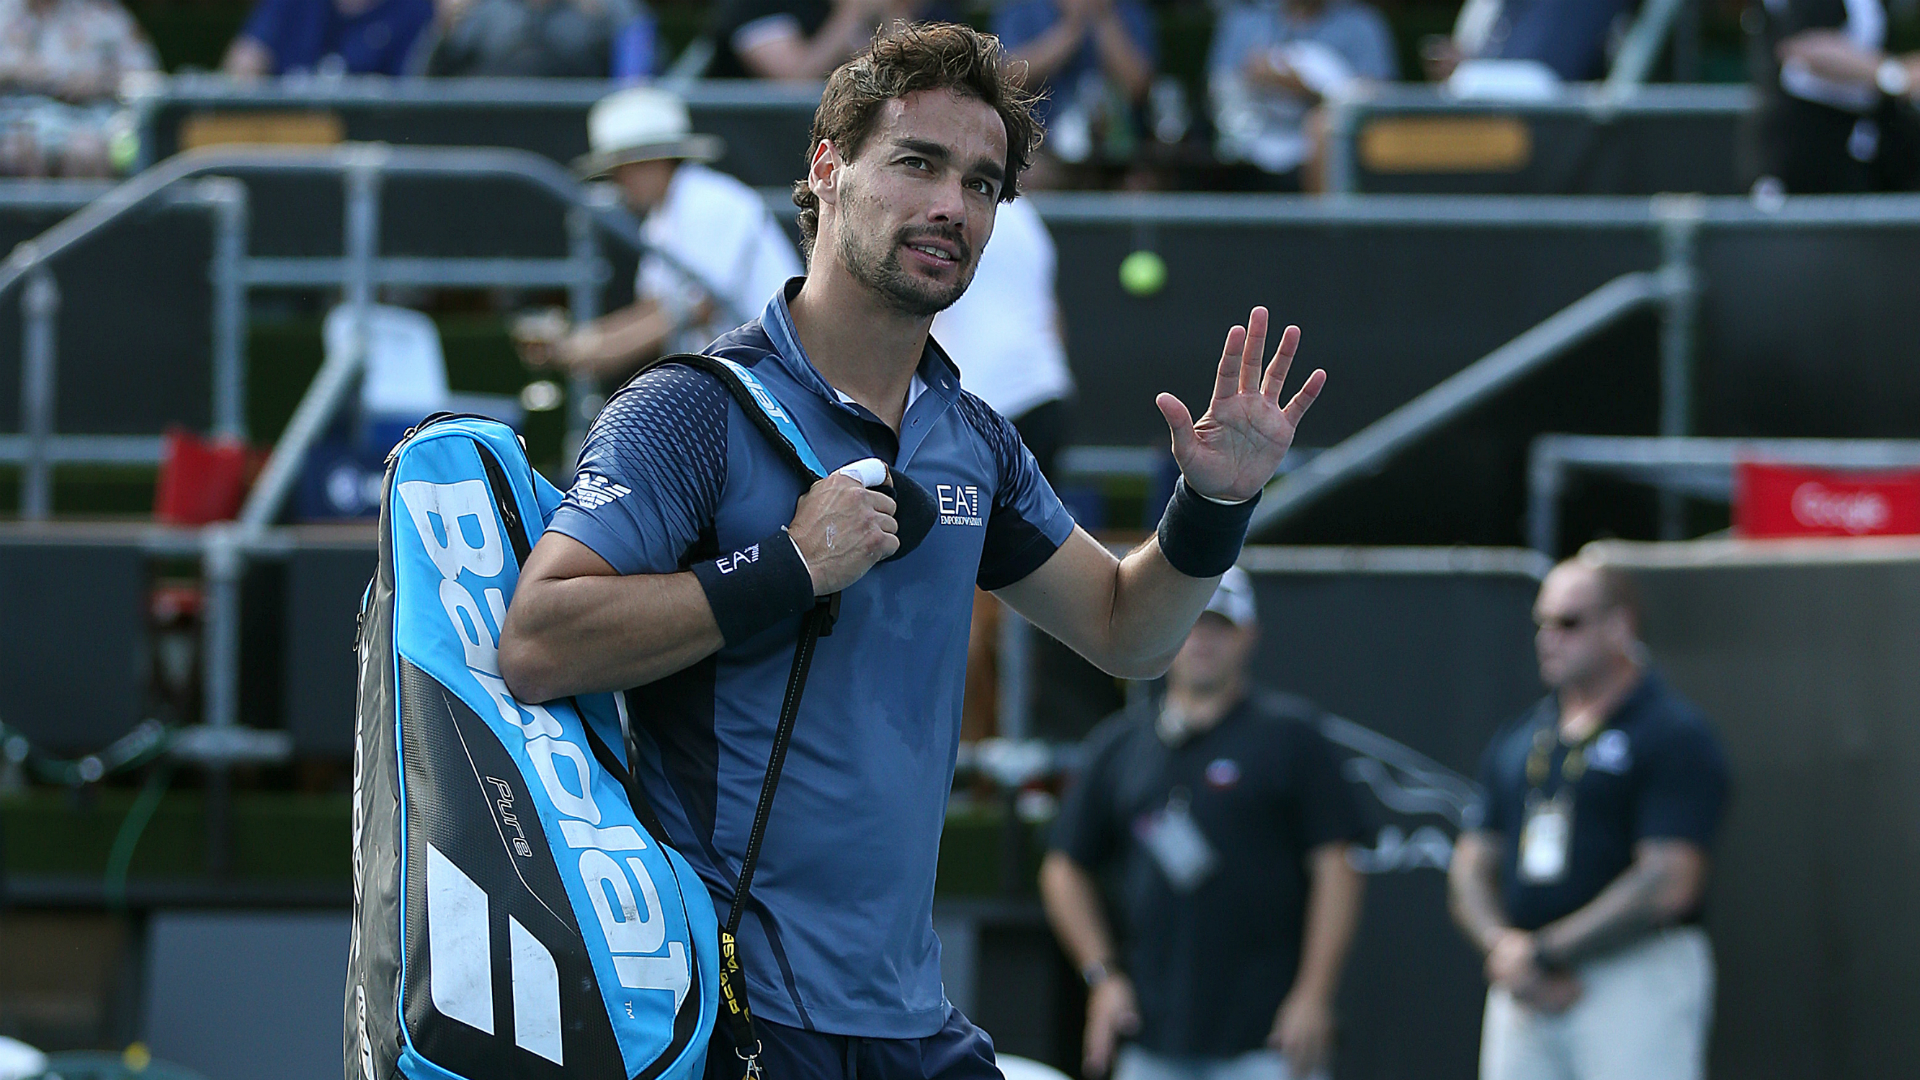 Fognini and Khachanov fall in Auckland, Auger-Aliassime through in Adelaide